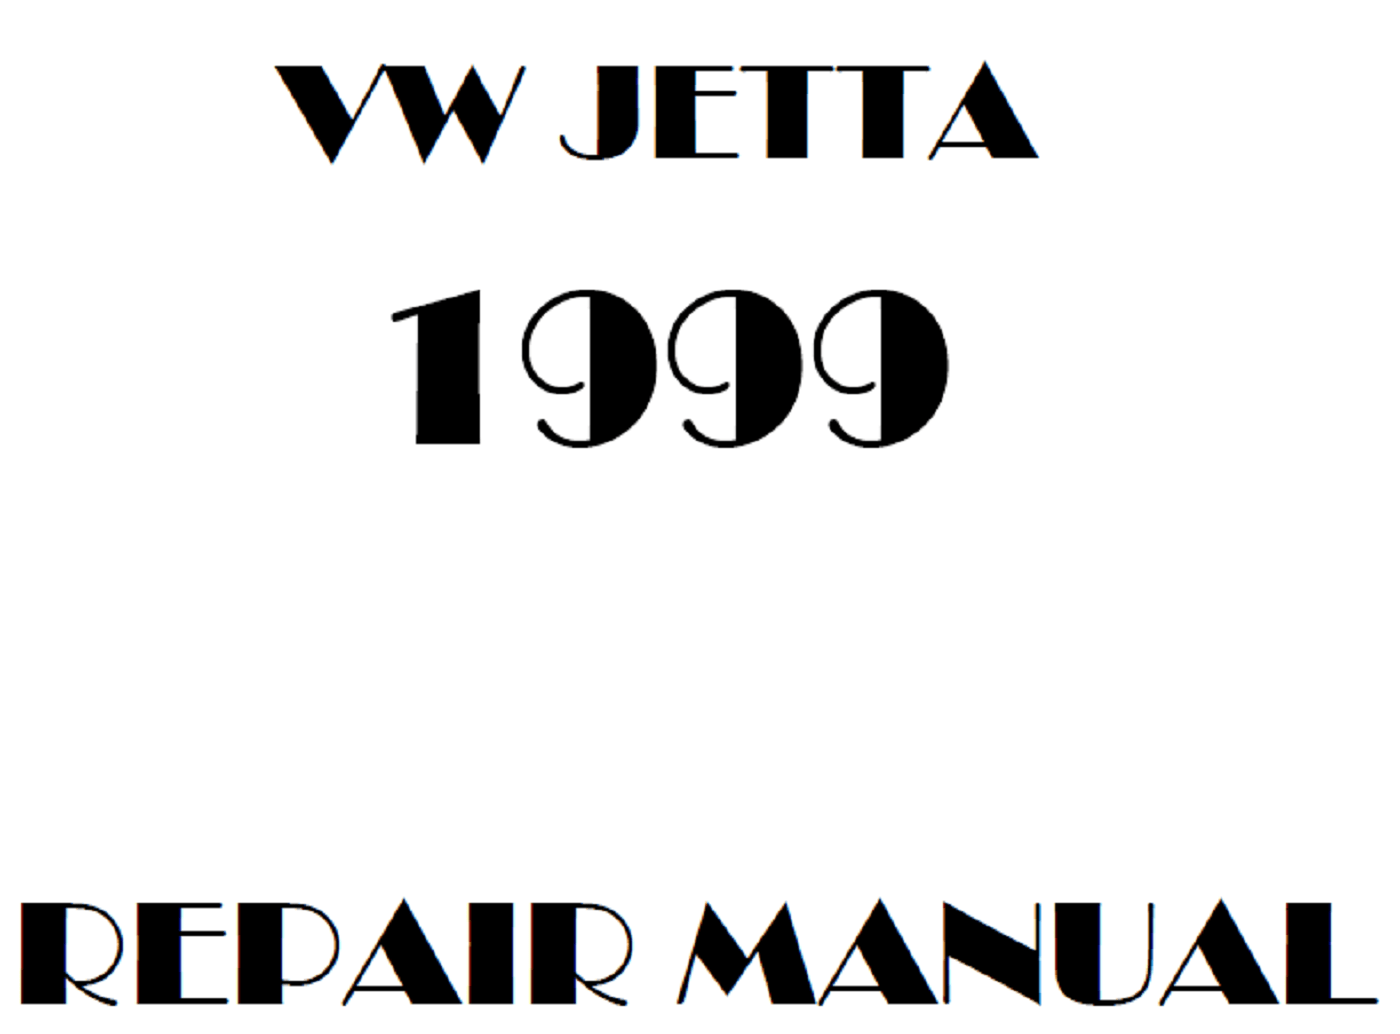 1999 Volkswagen Jetta repair manual